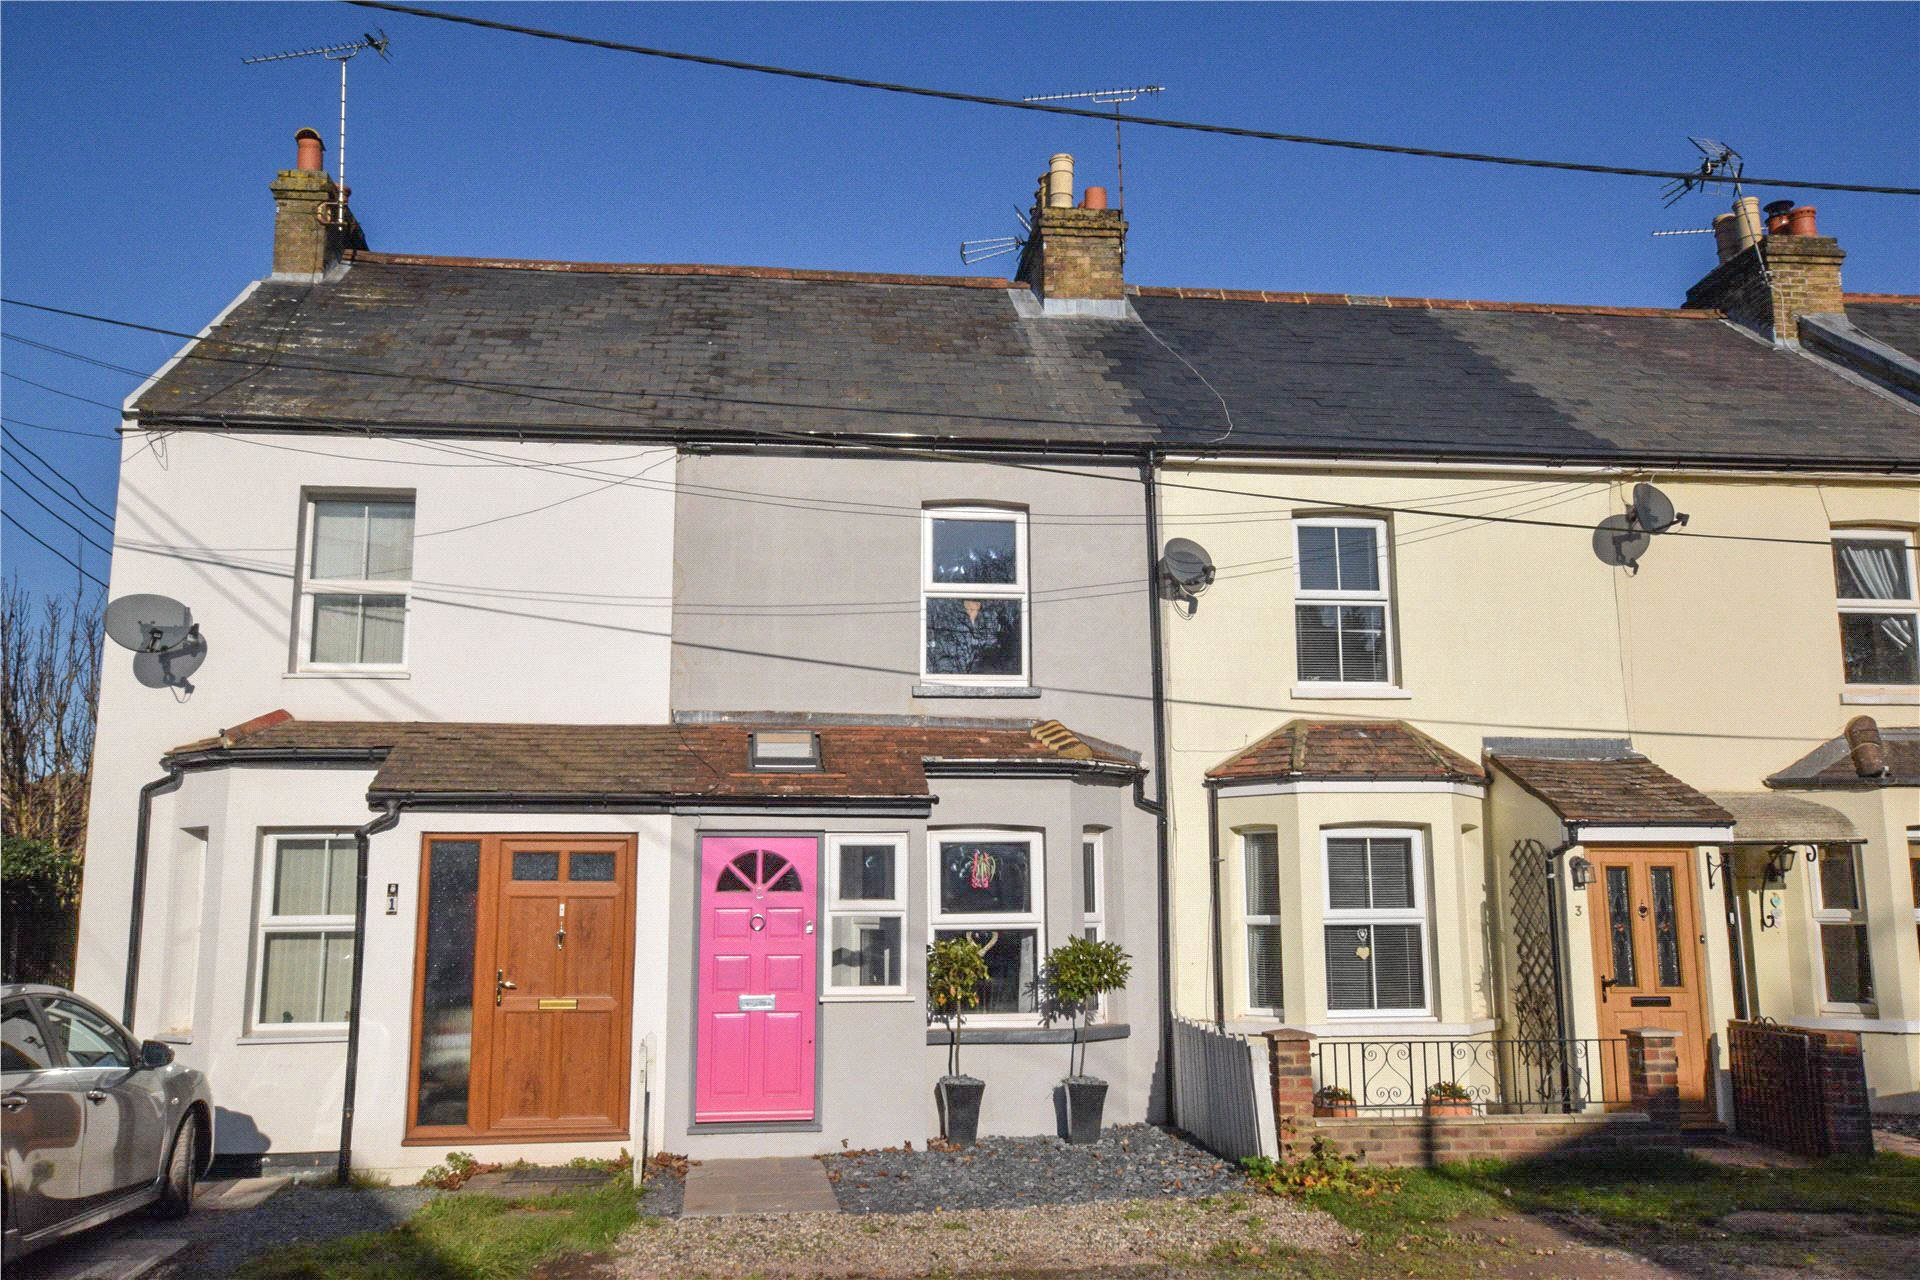 2 Bedrooms Terraced House for sale in Salisbury Terrace, Mytchett, Camberley, Surrey, GU16